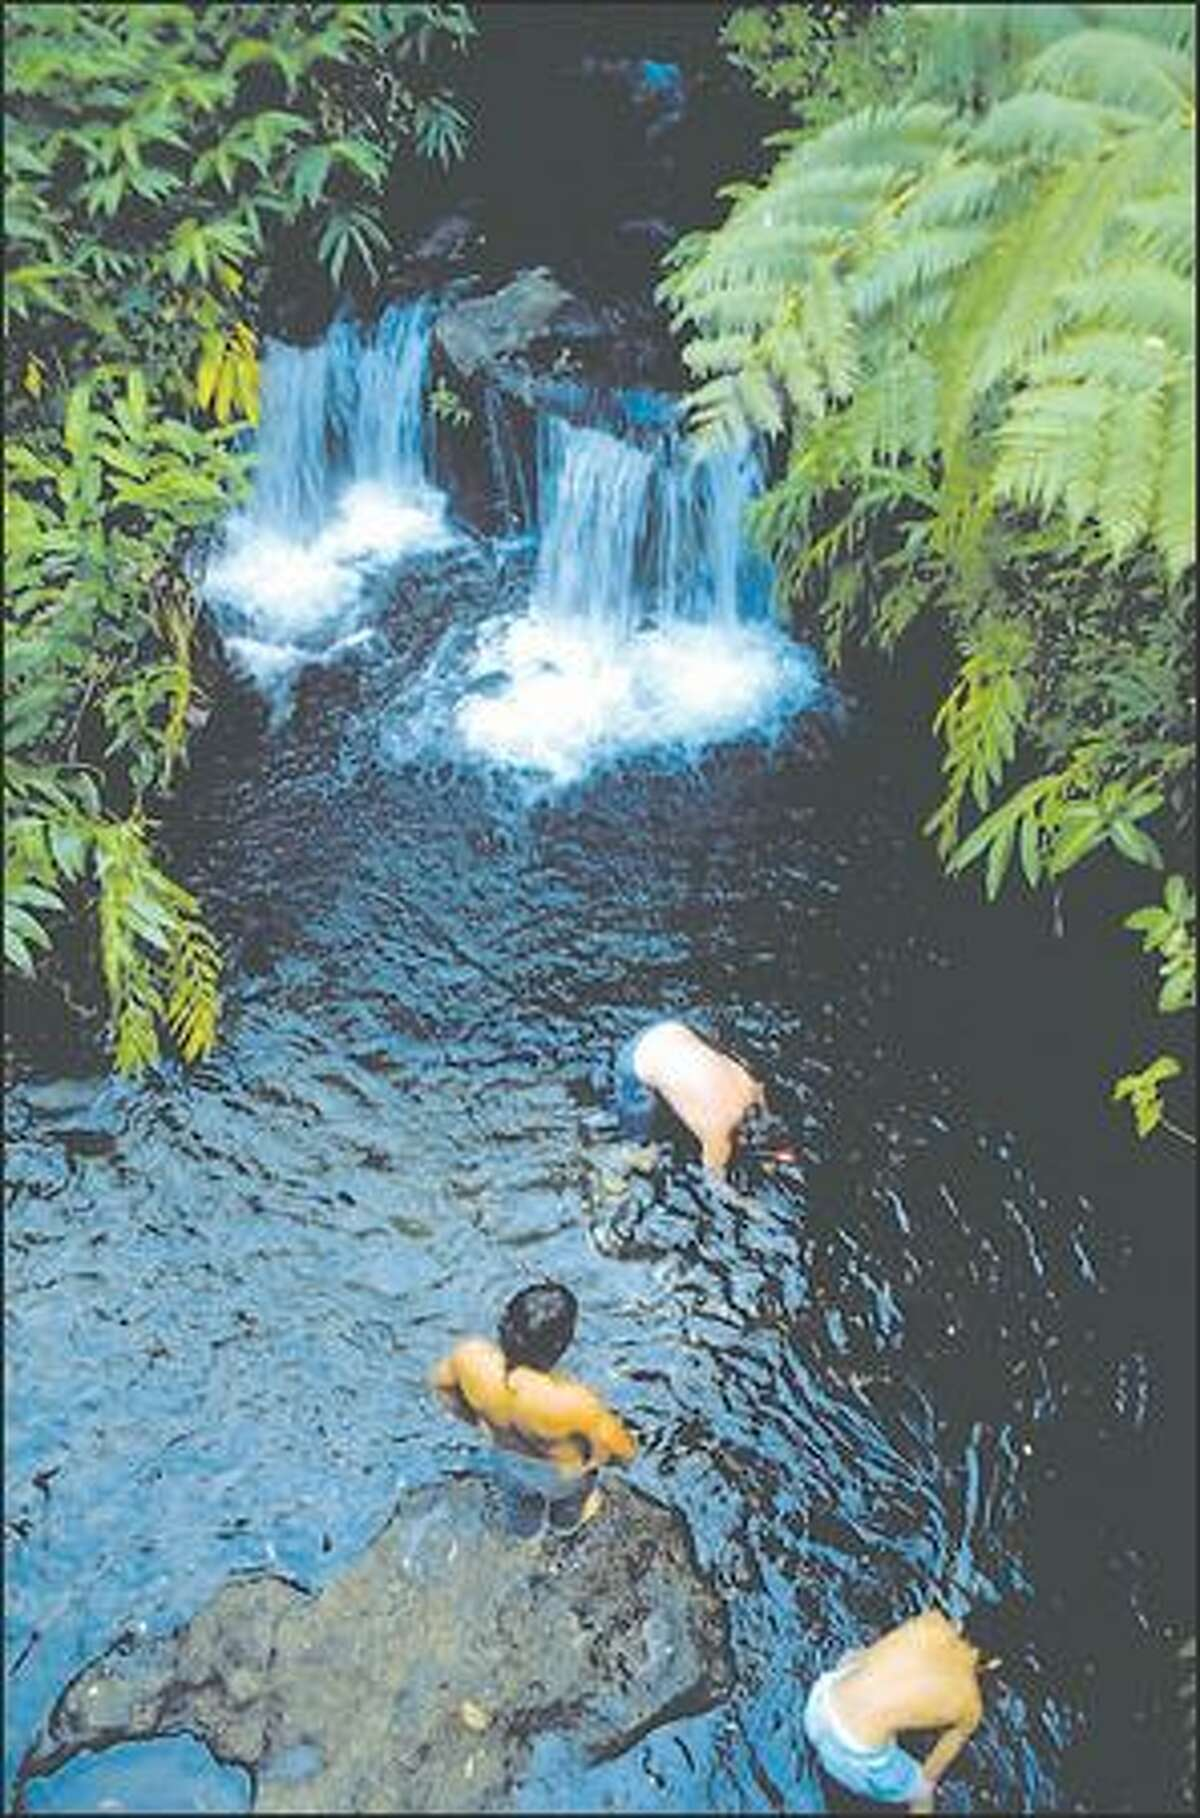 Local kids can't resist the lure of coins tossed in a pool at one of the falls in Akaka Falls State Park on the Big Island.